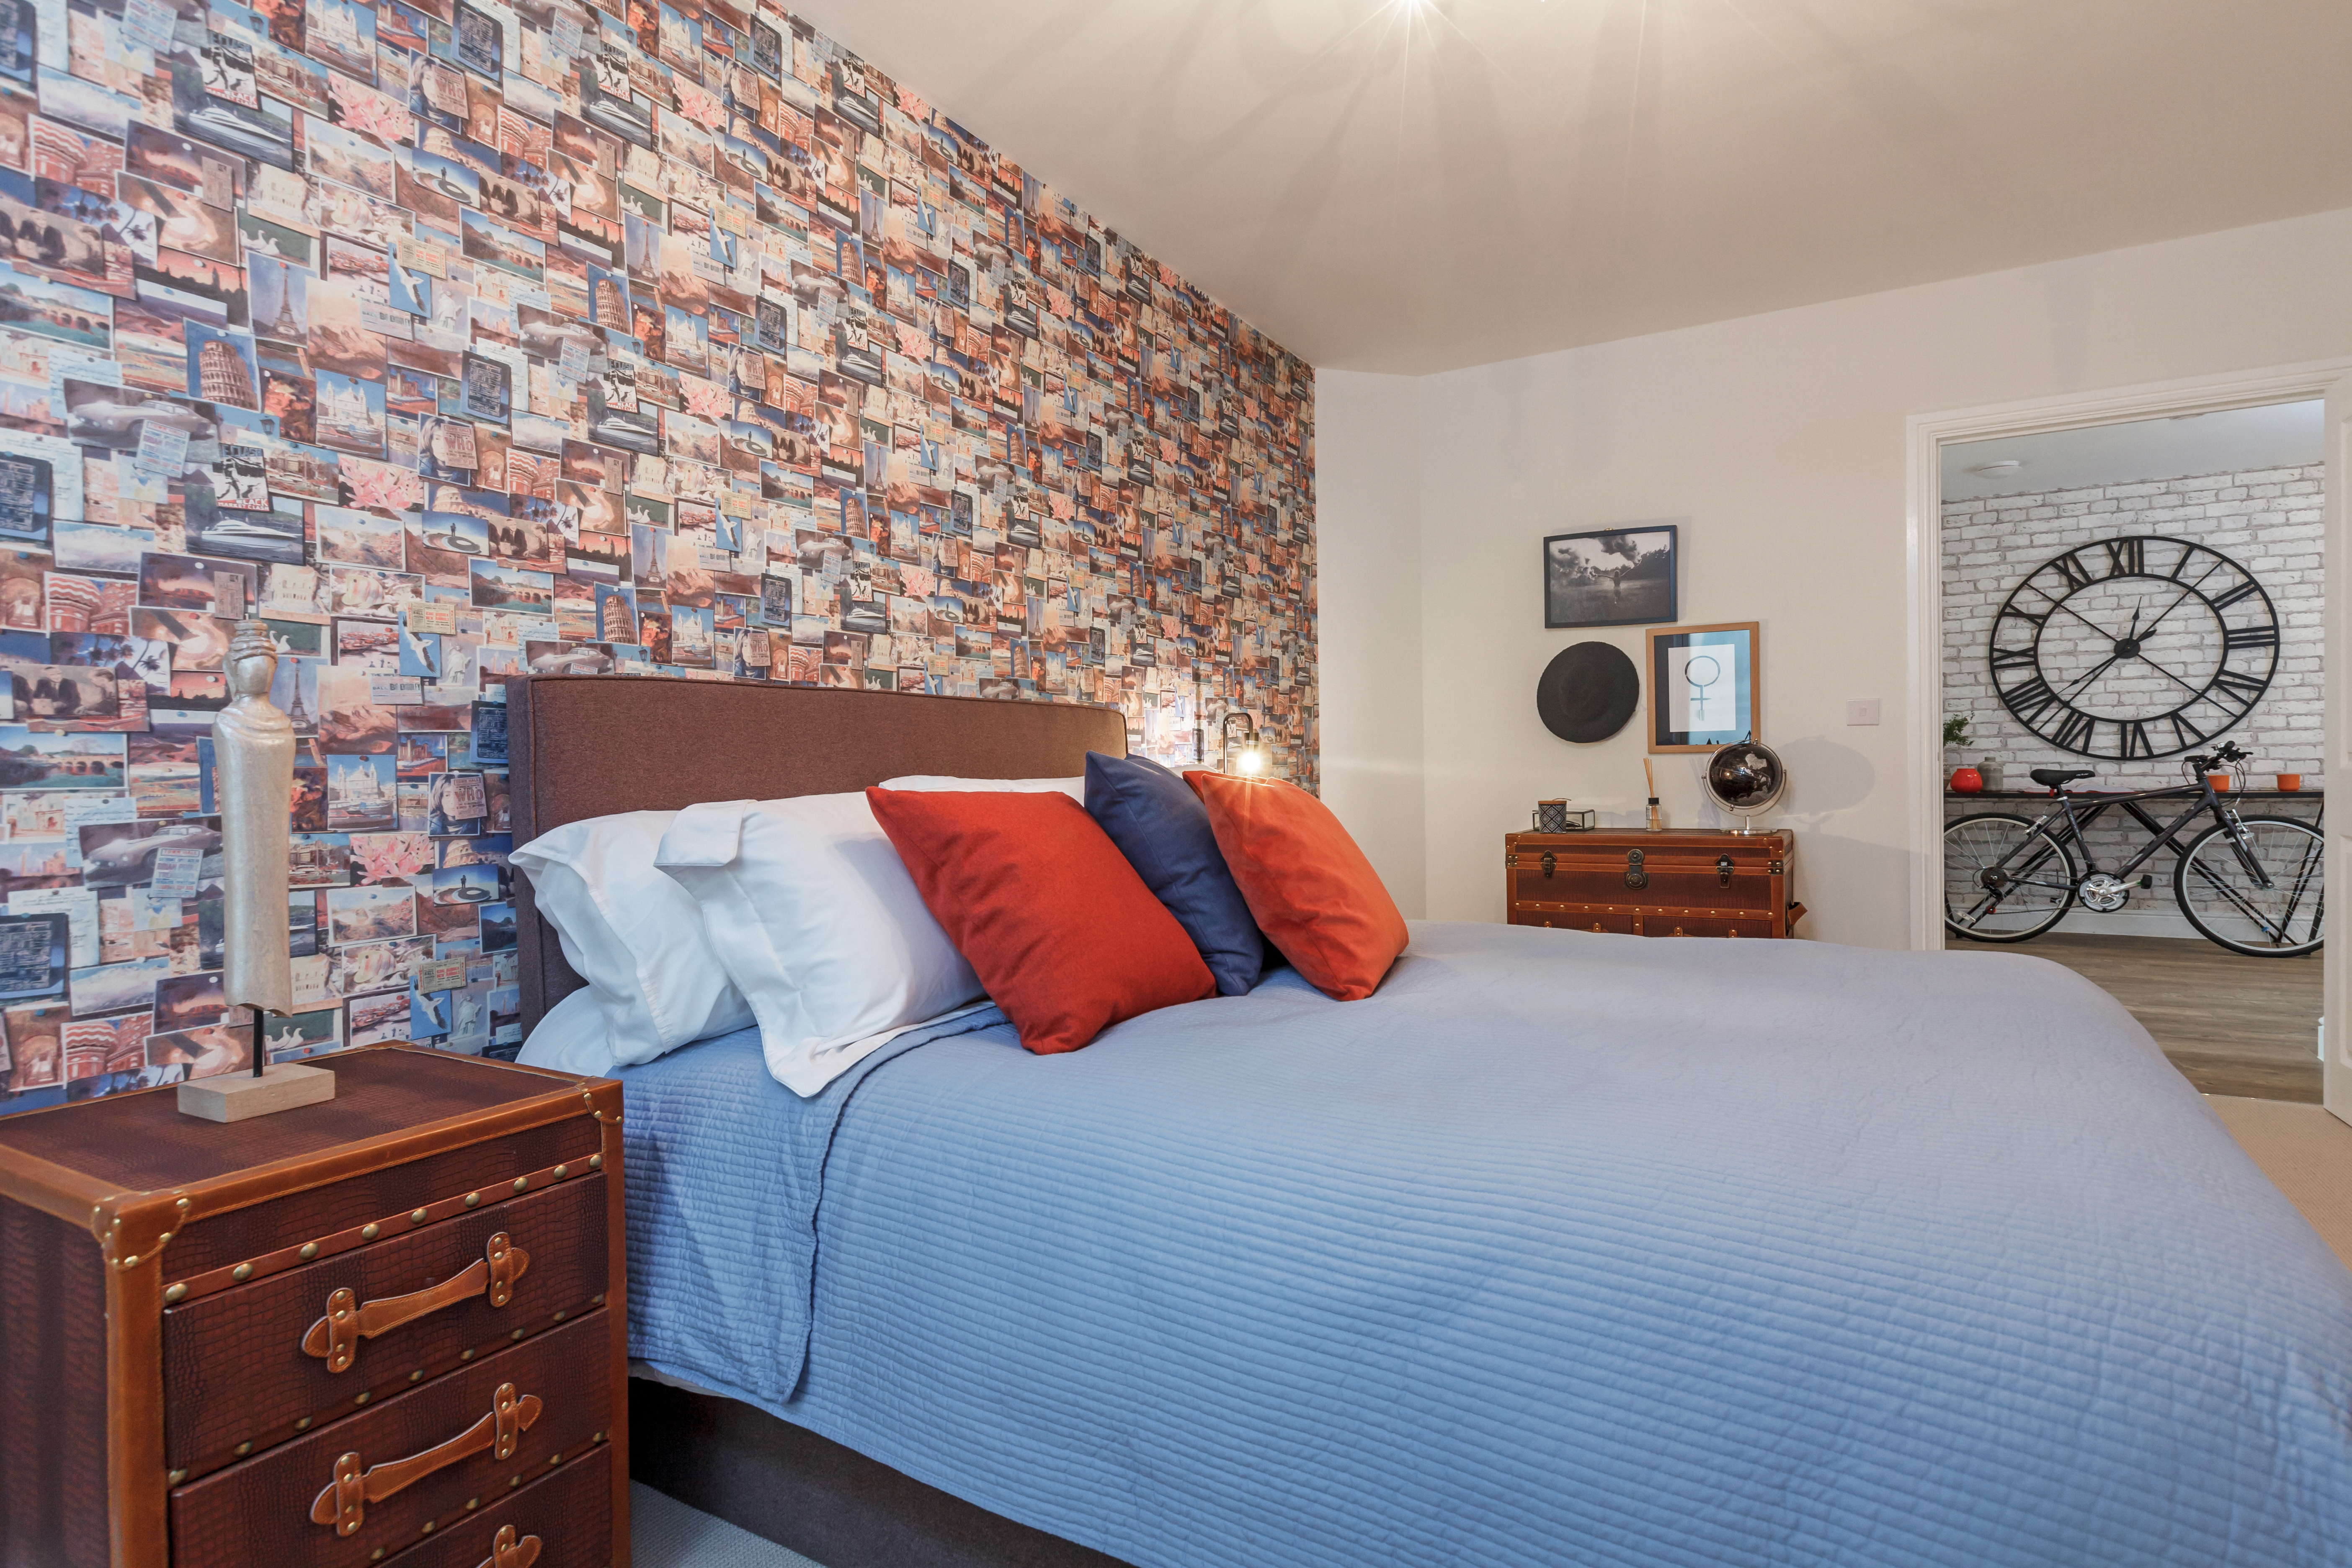 TW_NT_St Georges Square_Maven_Bedroom_1_2